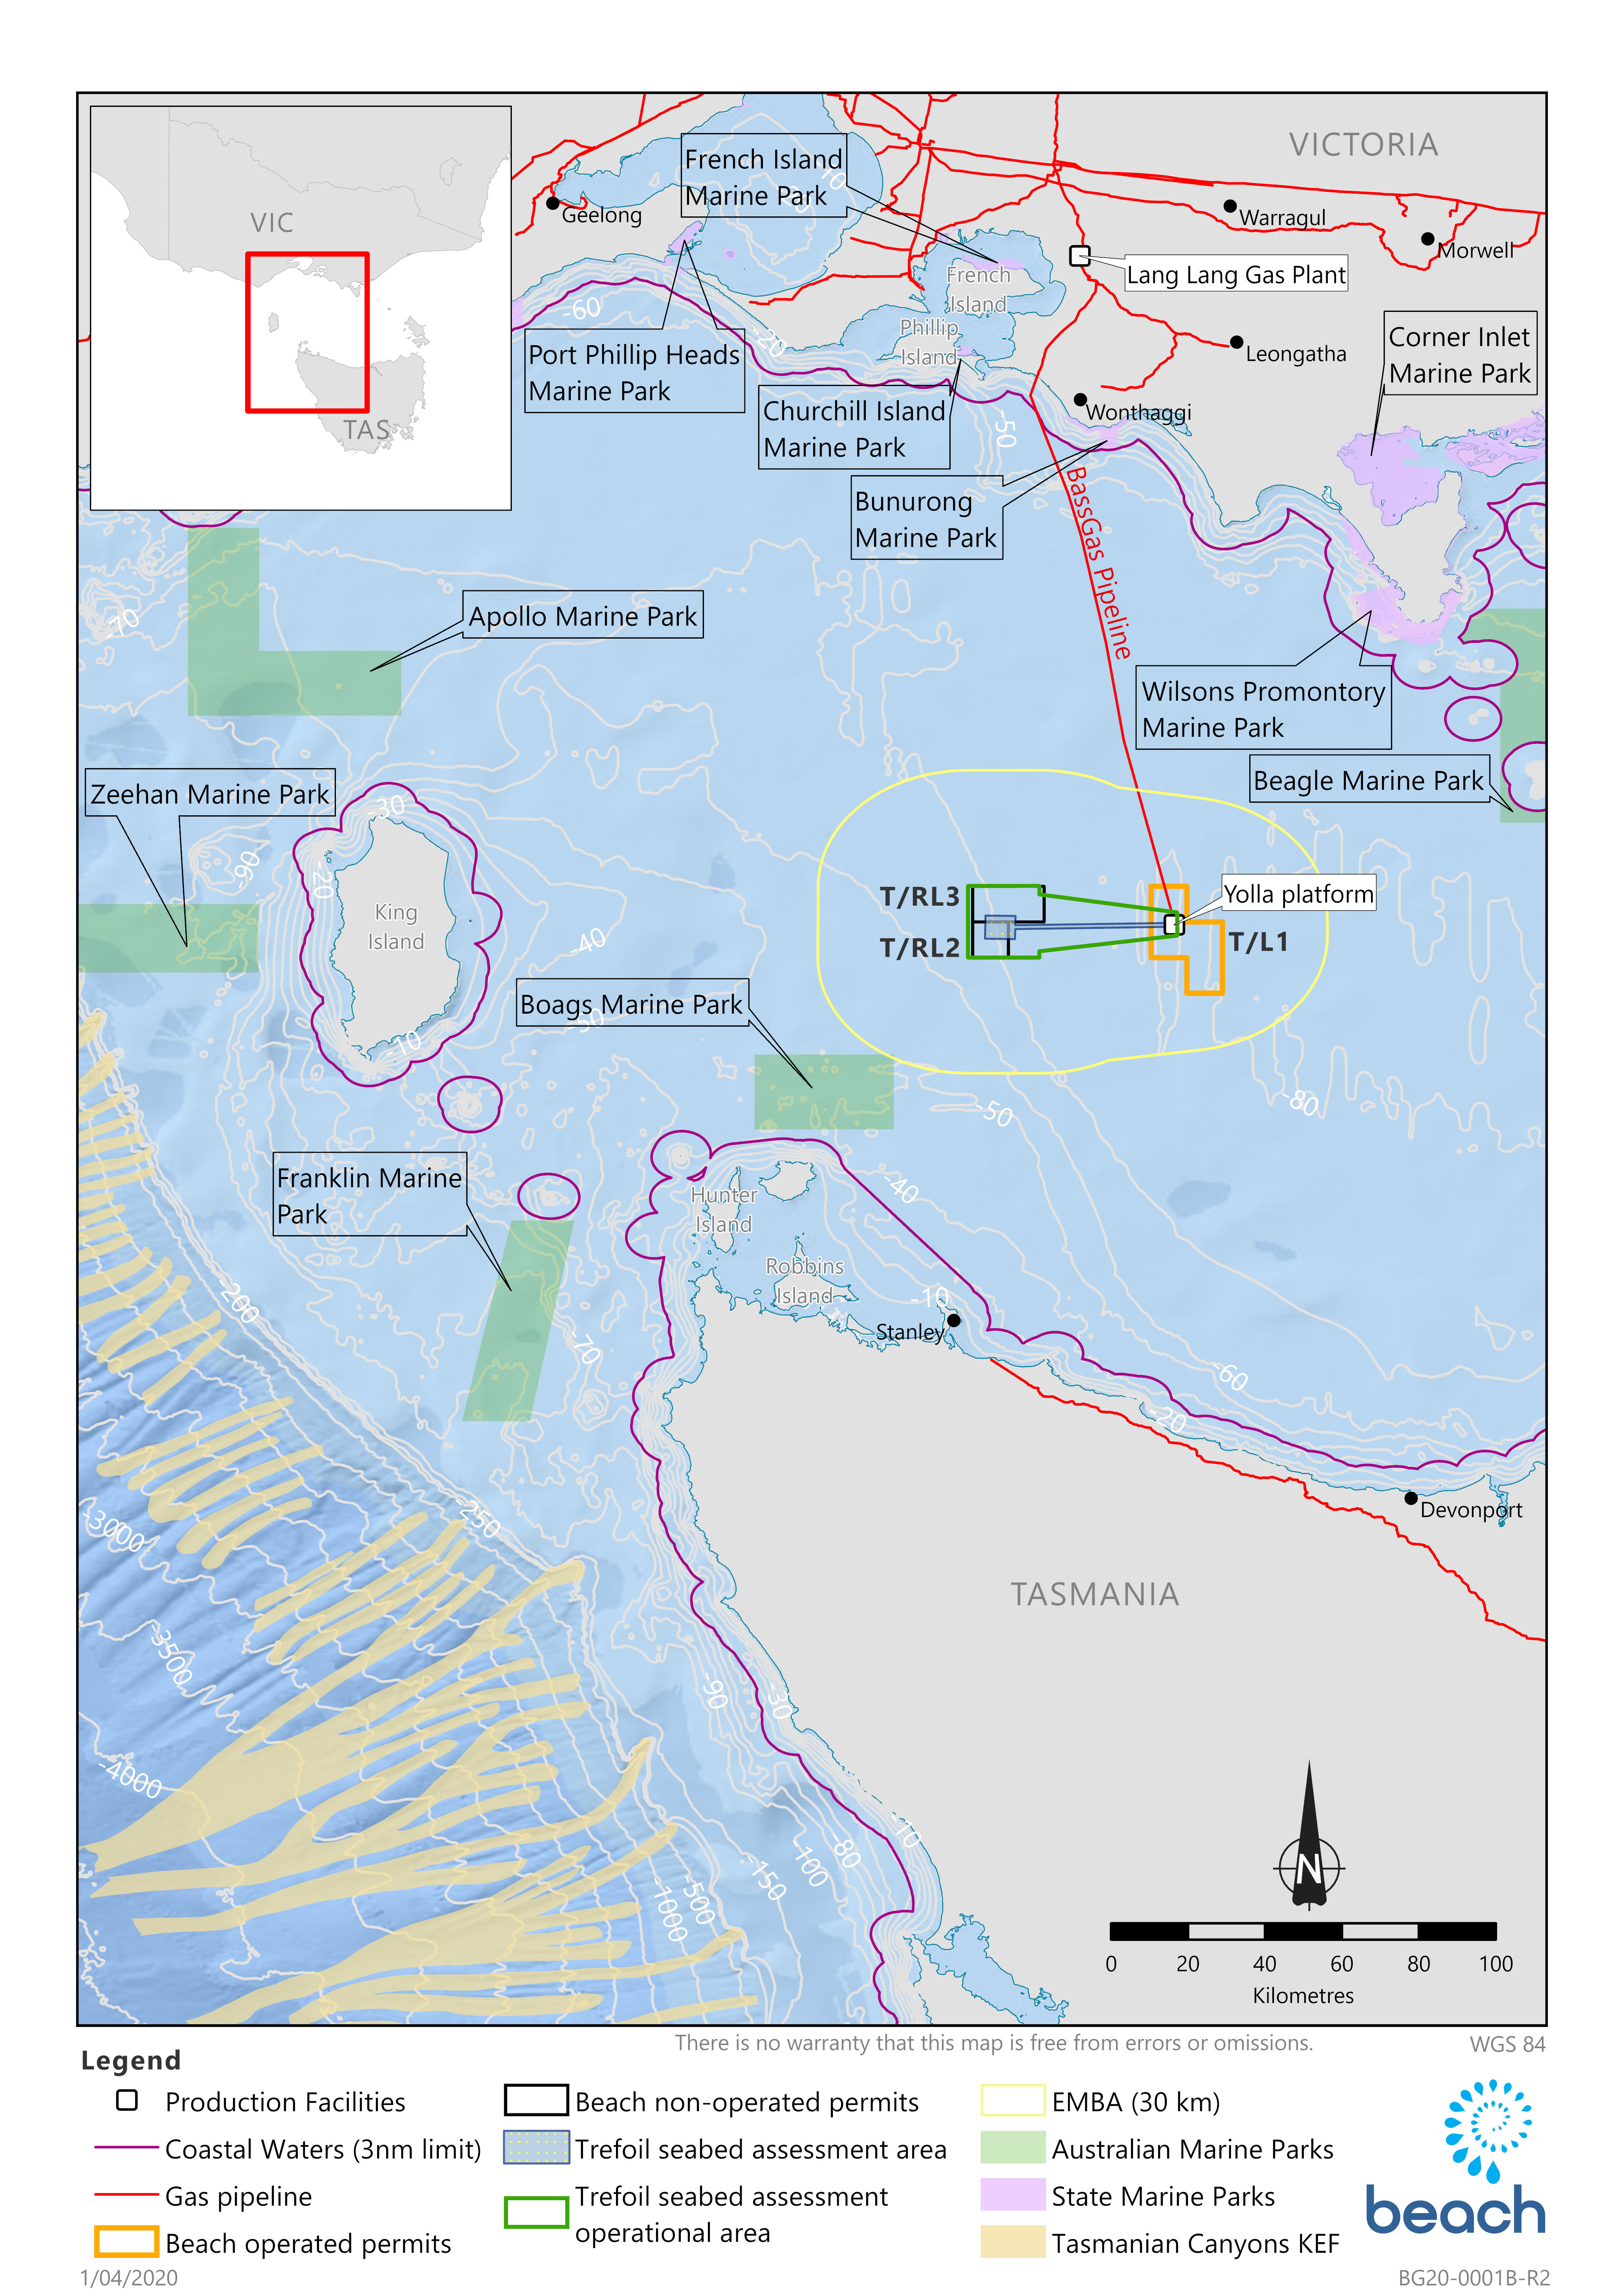 Location map - Activity: Trefoil Geophysical and Geotechnical Seabed Assessment (refer to description)